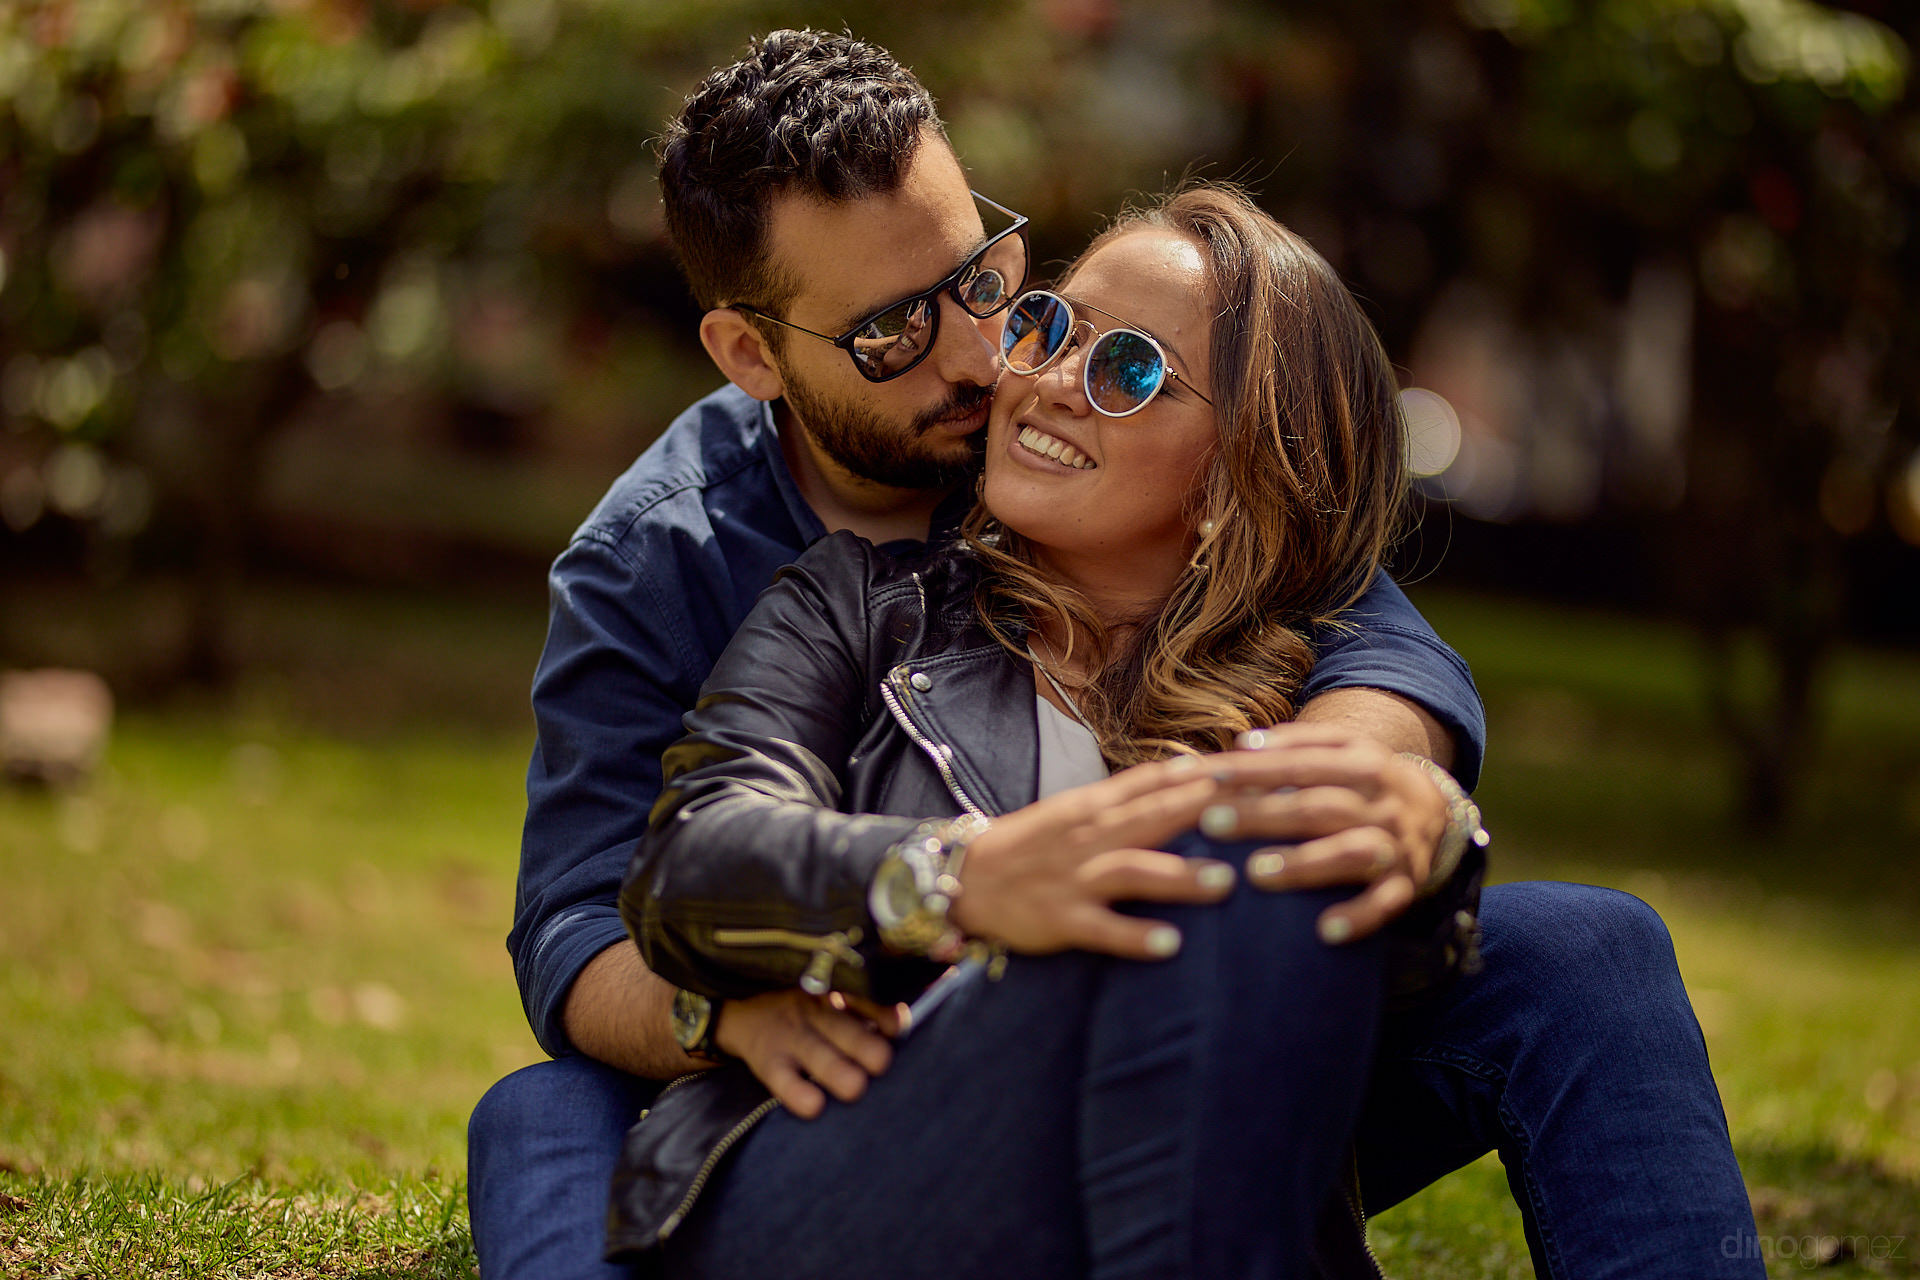 Dino Gomez Is A Photographer In Queretaro Offering A Varied Portfolio Of Photos, Which Include Wedding Photography, Senior Portraits, Beach Sessions And More